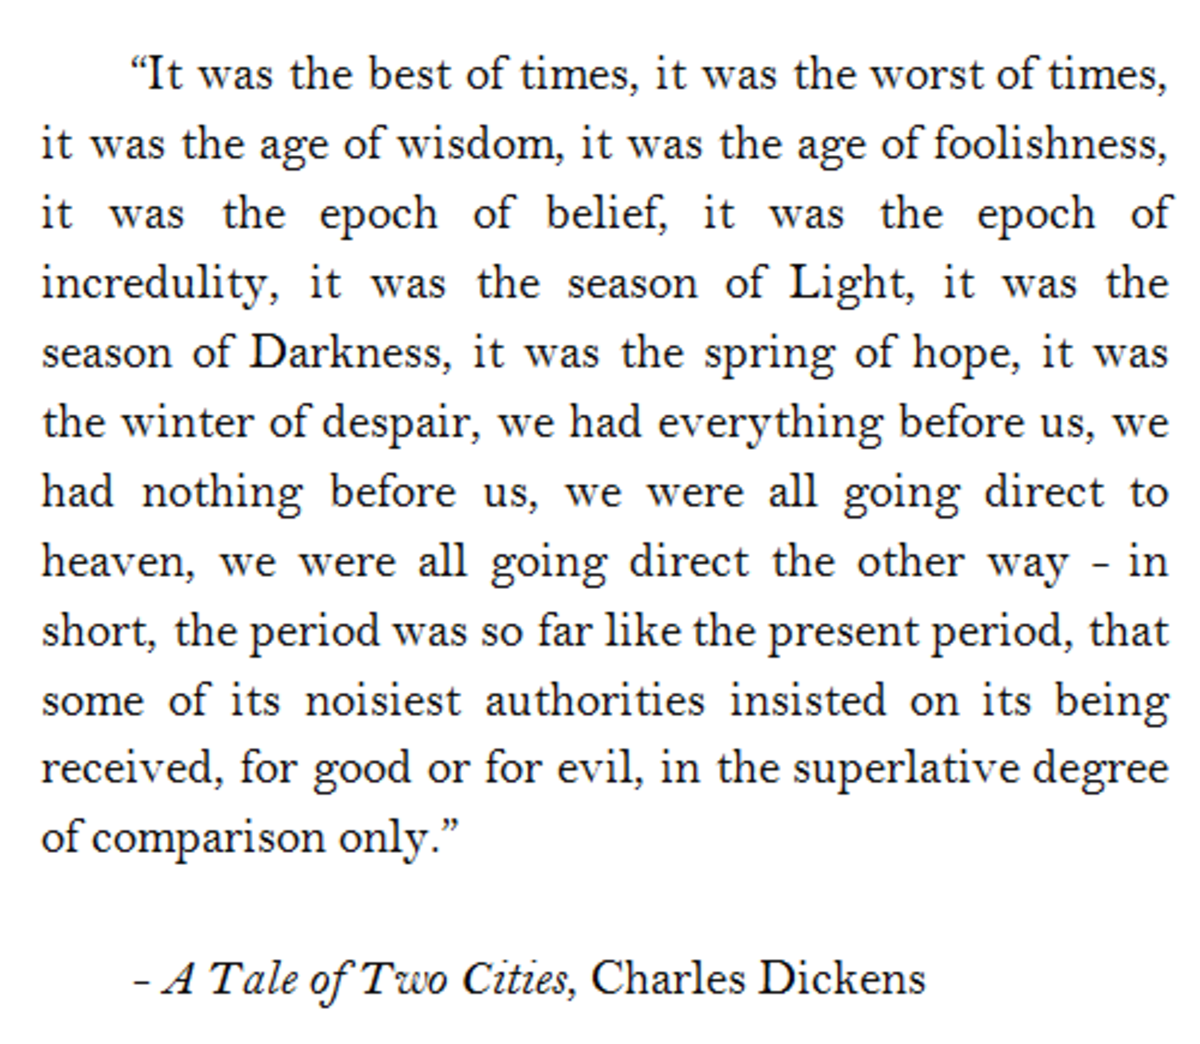 Dickens' 'A Tale Of Two Cities' charts the change Sidney Carton undergoes at the time of the French Revolution when he is given stark choices. He takes the noble way out and changes place with a French aristocrat so that his family survives